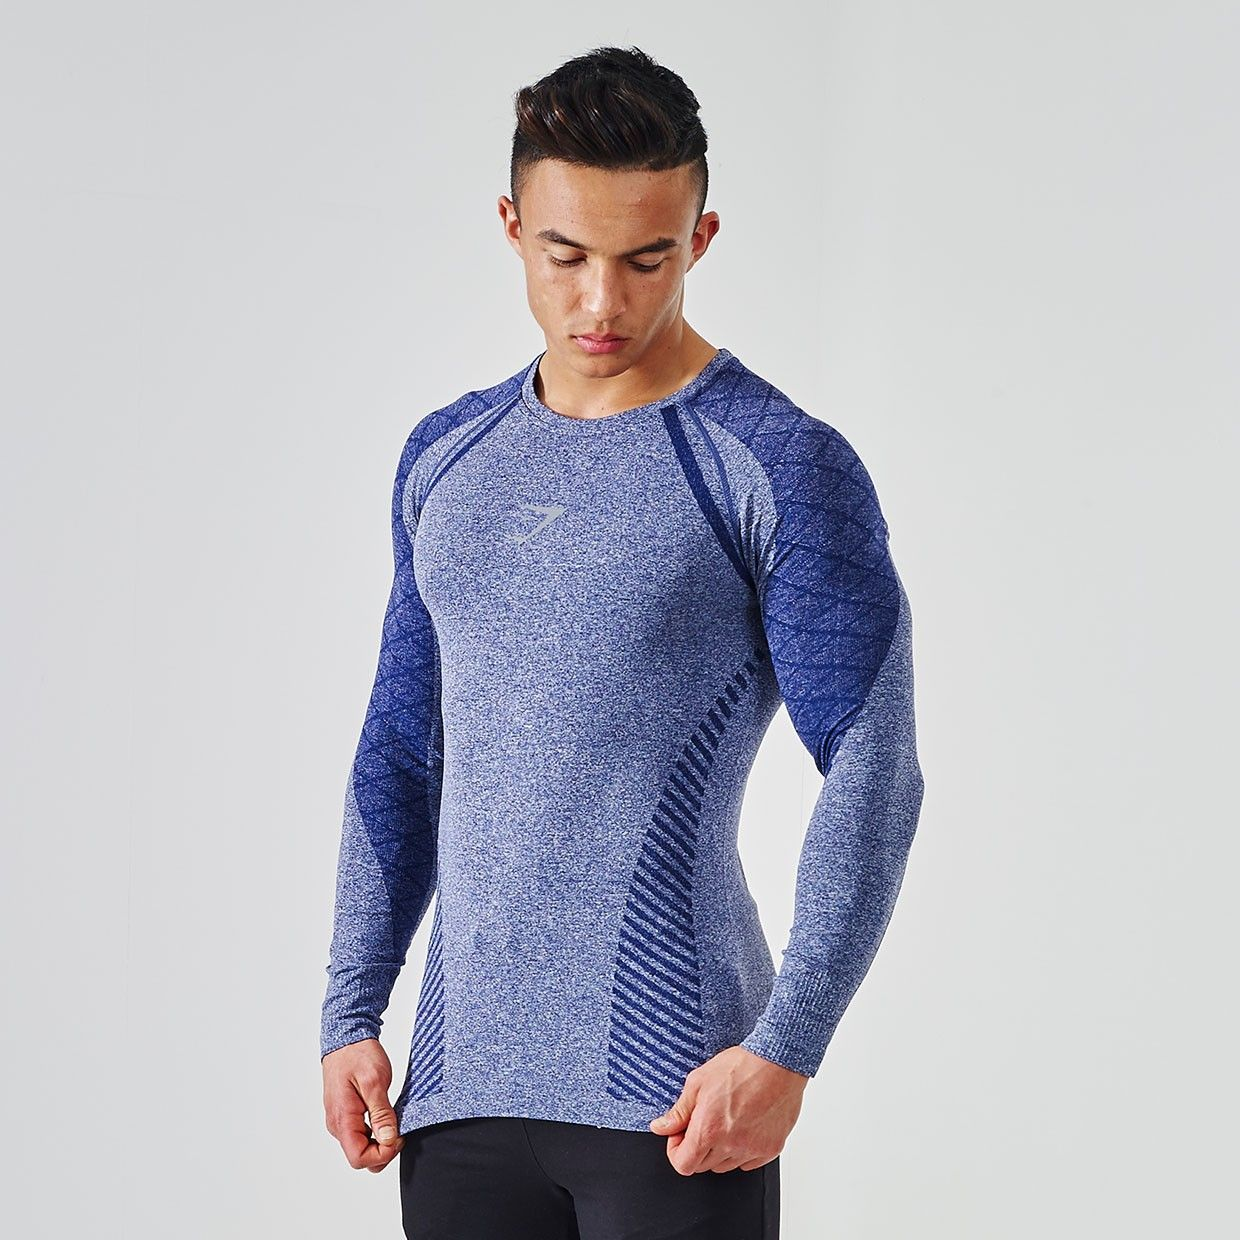 Gymshark-Devant-Seamless-Long-Sleeve-T-Shirt-Navy-v1 | Product ...